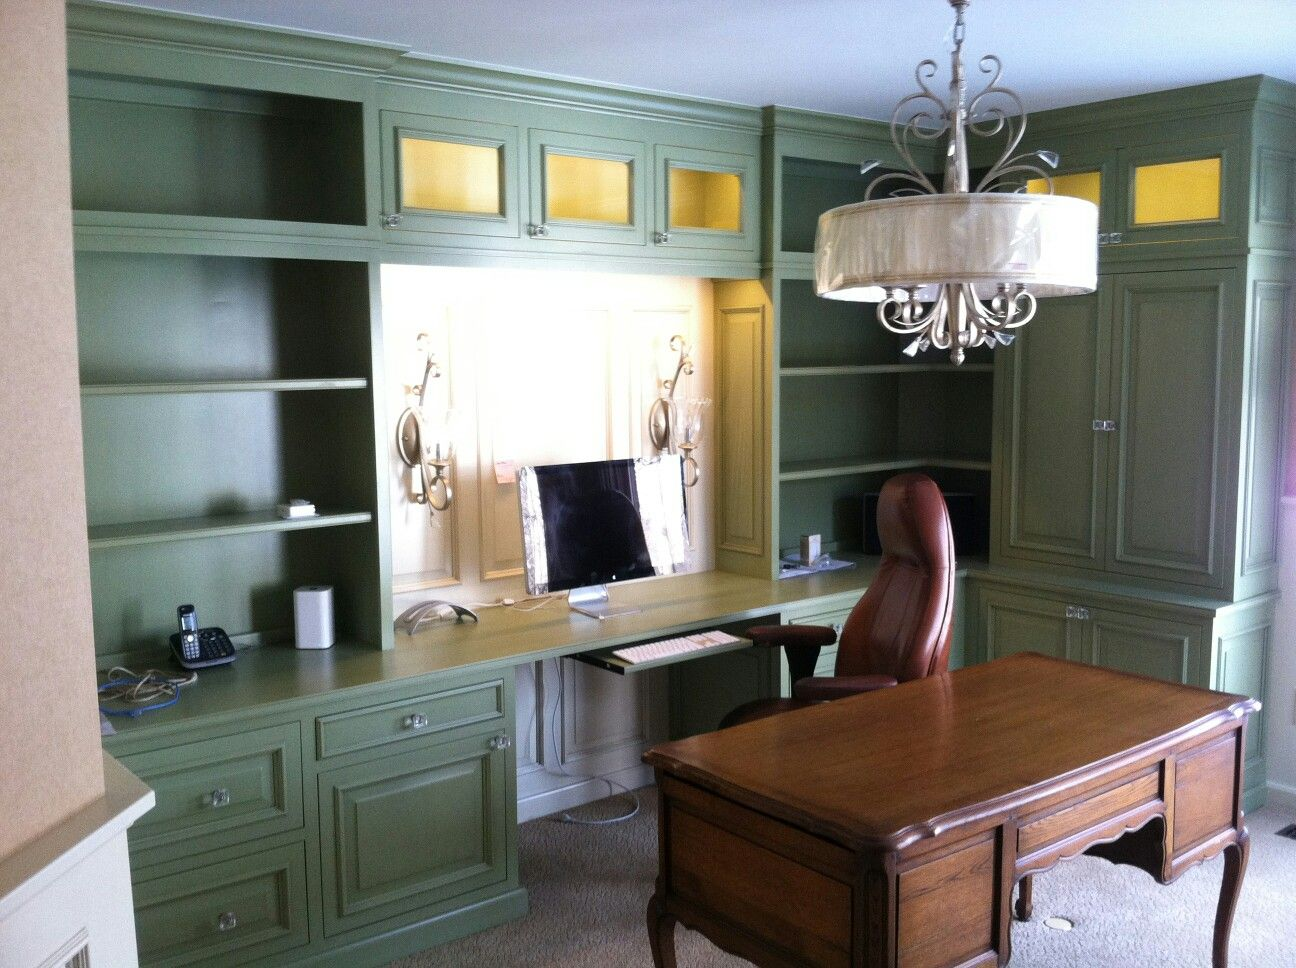 I Just Installed The Cabinets U0026 Wainscoting (Yoder Custom Woodworking). But  Turned Out